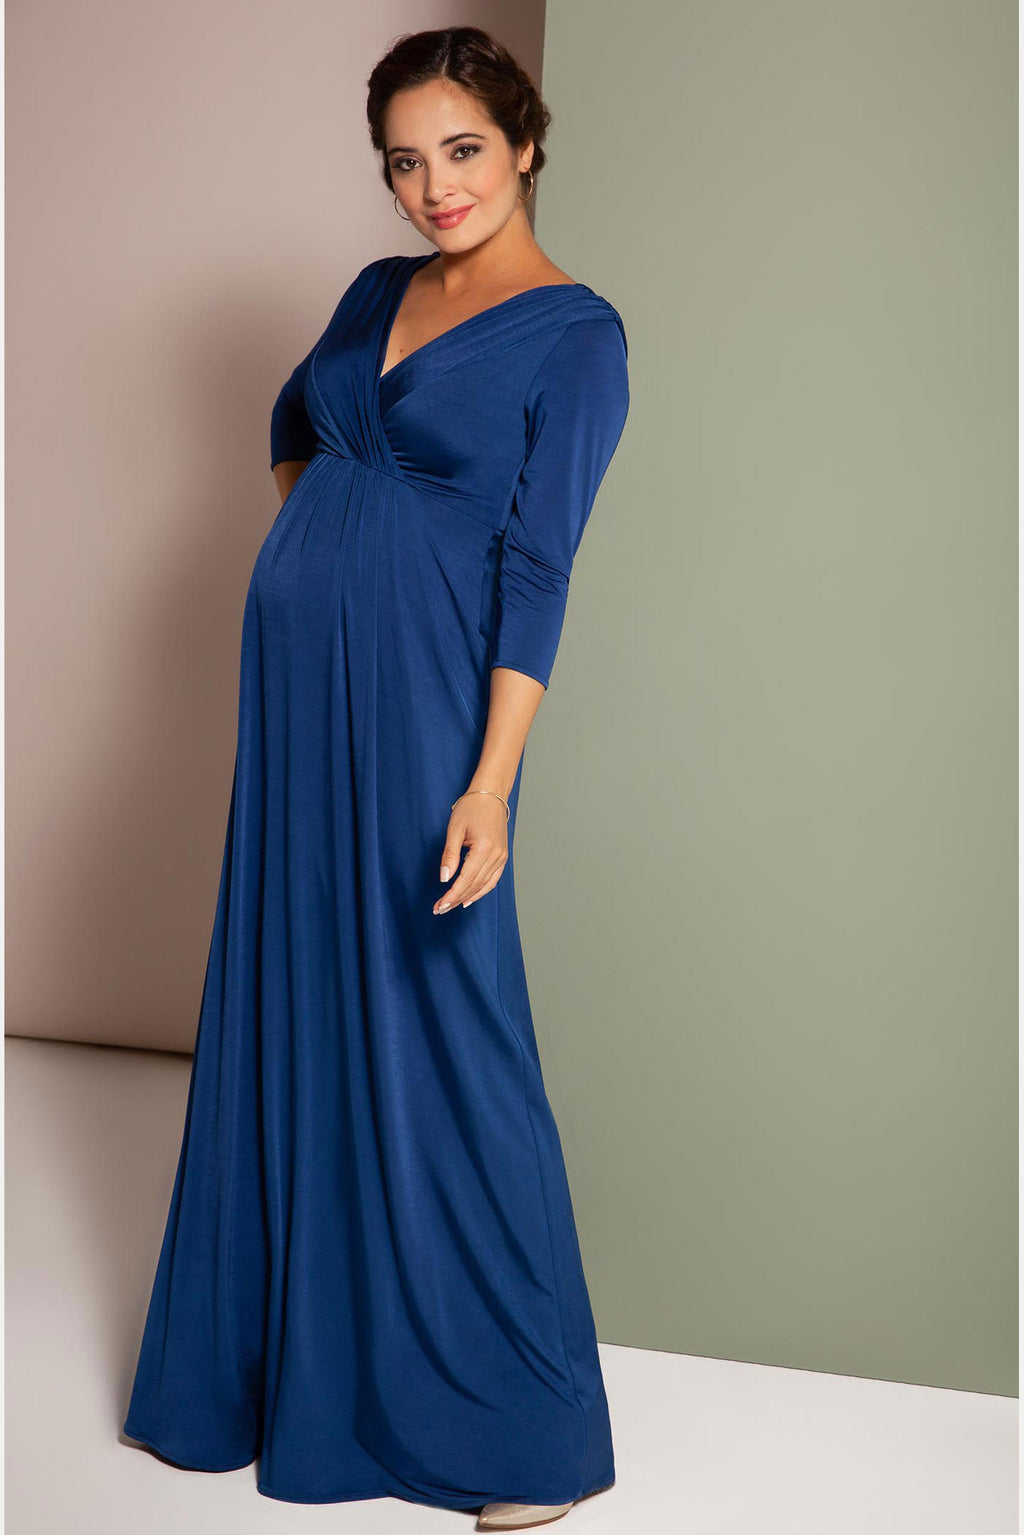 Tiffany Rose Willow Maternity & Nursing Gown - Seven Women Maternity